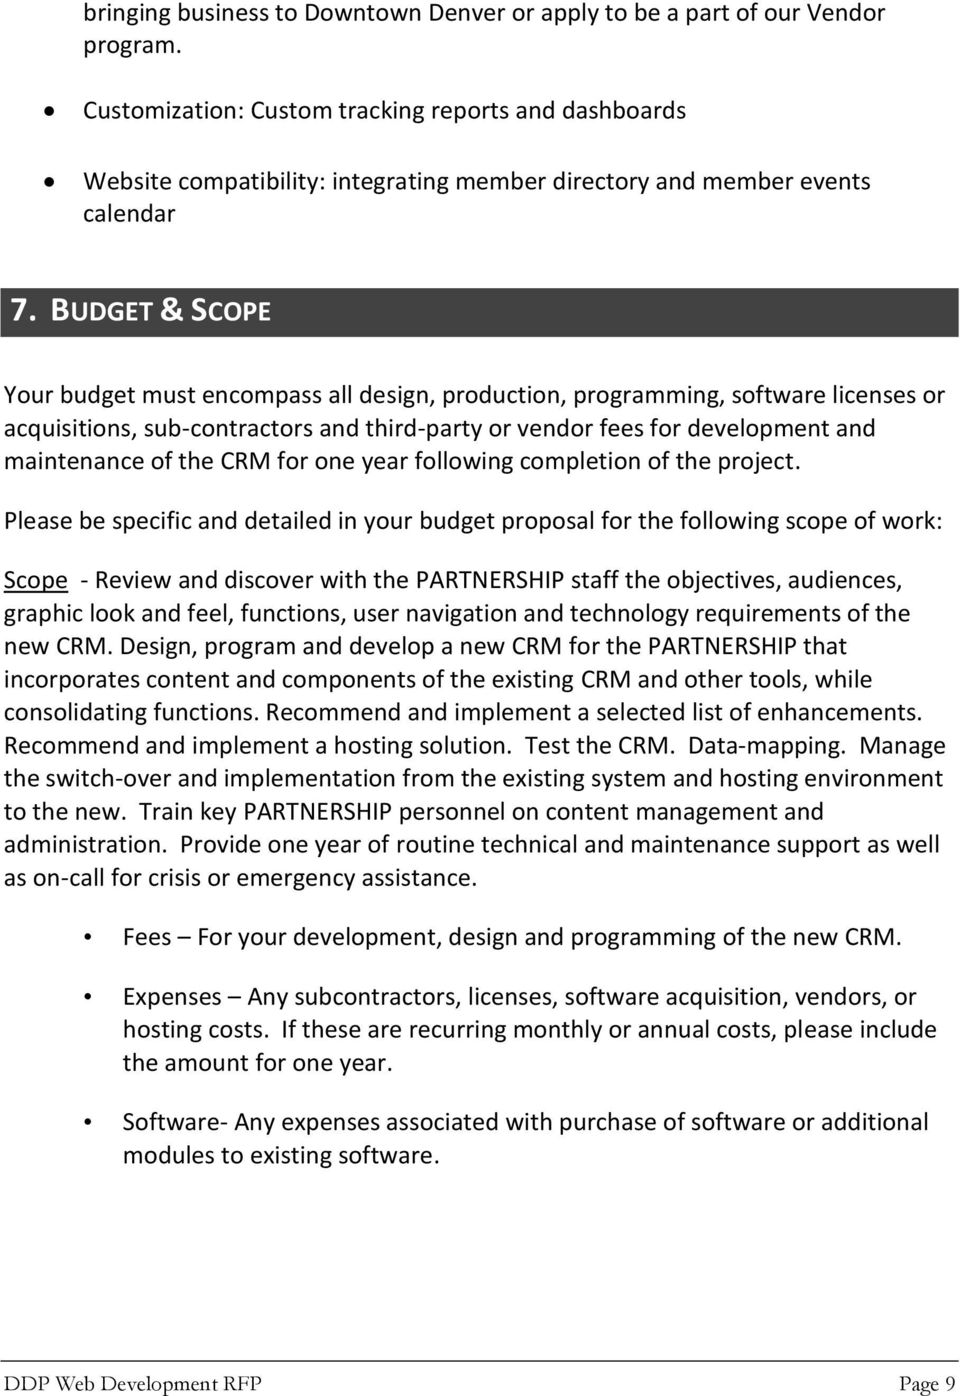 BUDGET & SCOPE Your budget must encompass all design, production, programming, software licenses or acquisitions, sub-contractors and third-party or vendor fees for development and maintenance of the